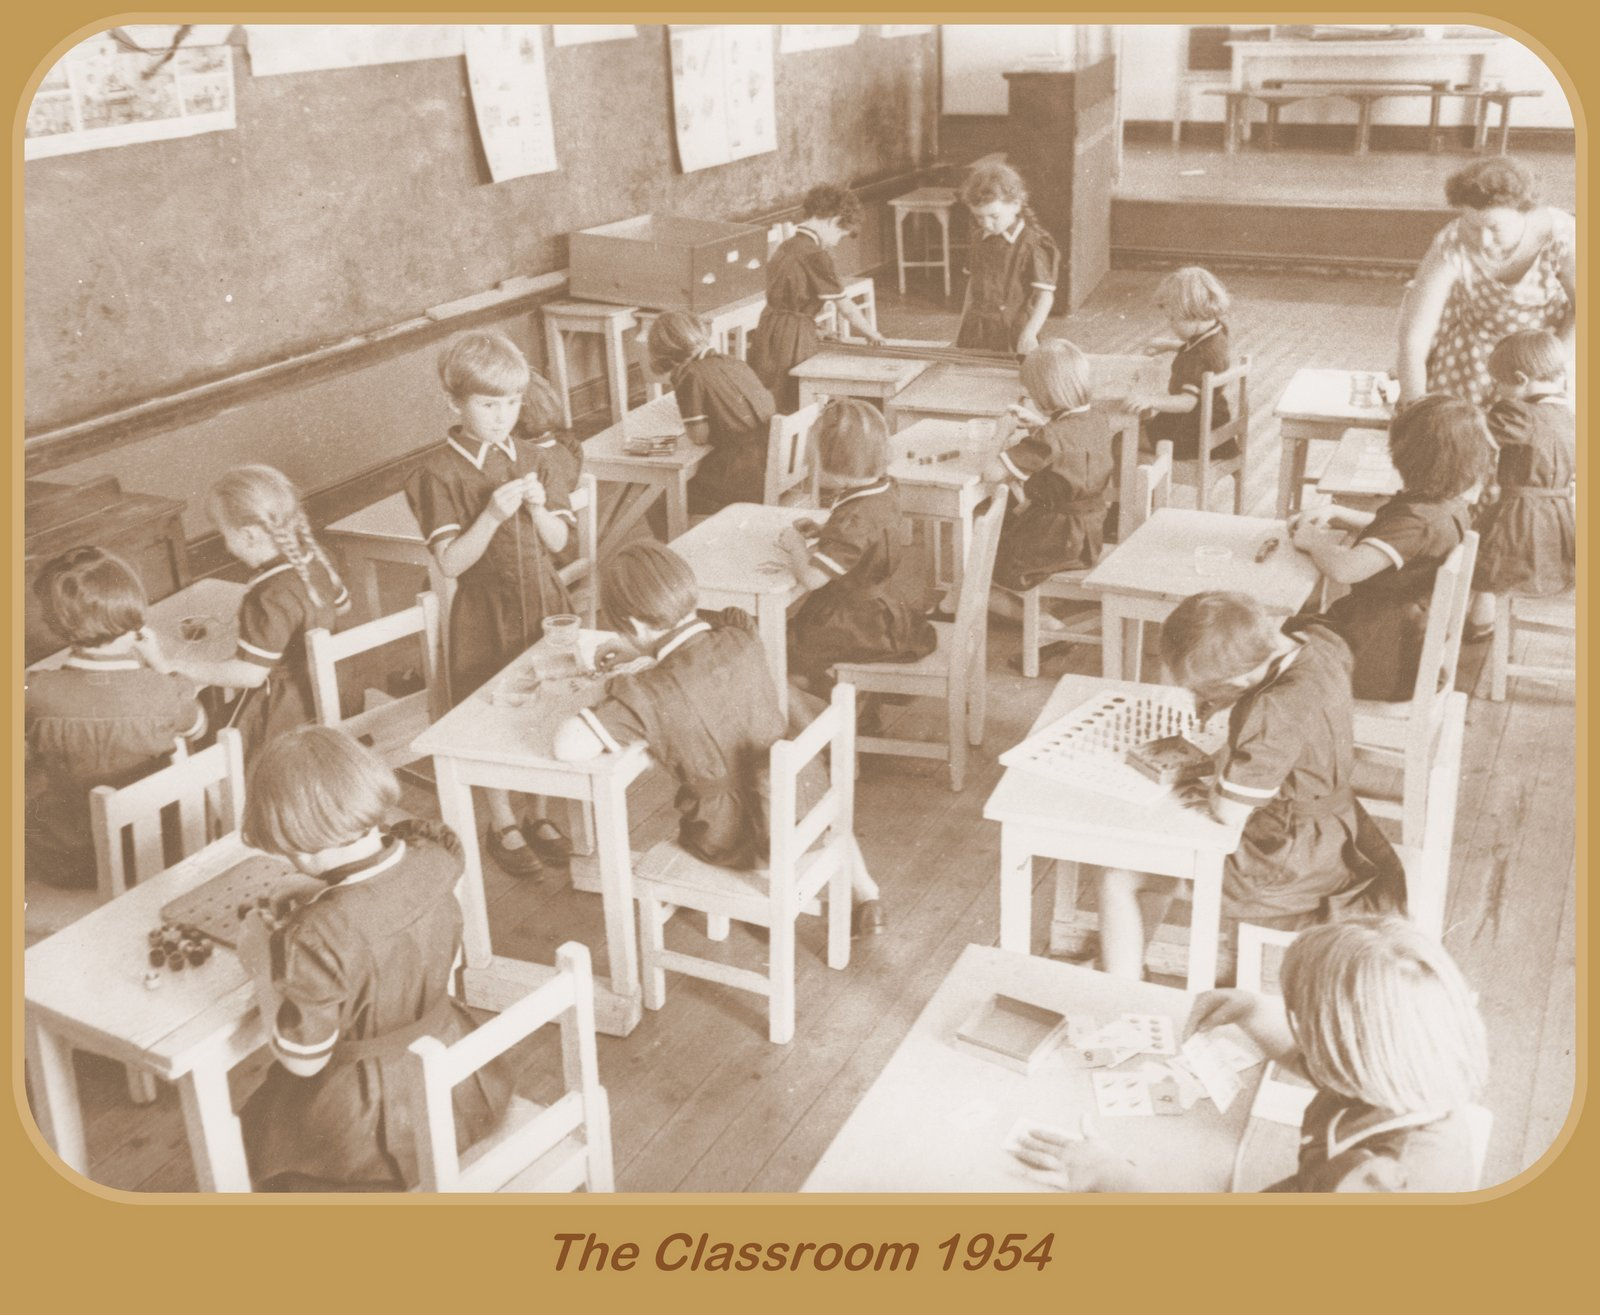 Classrooms 1954